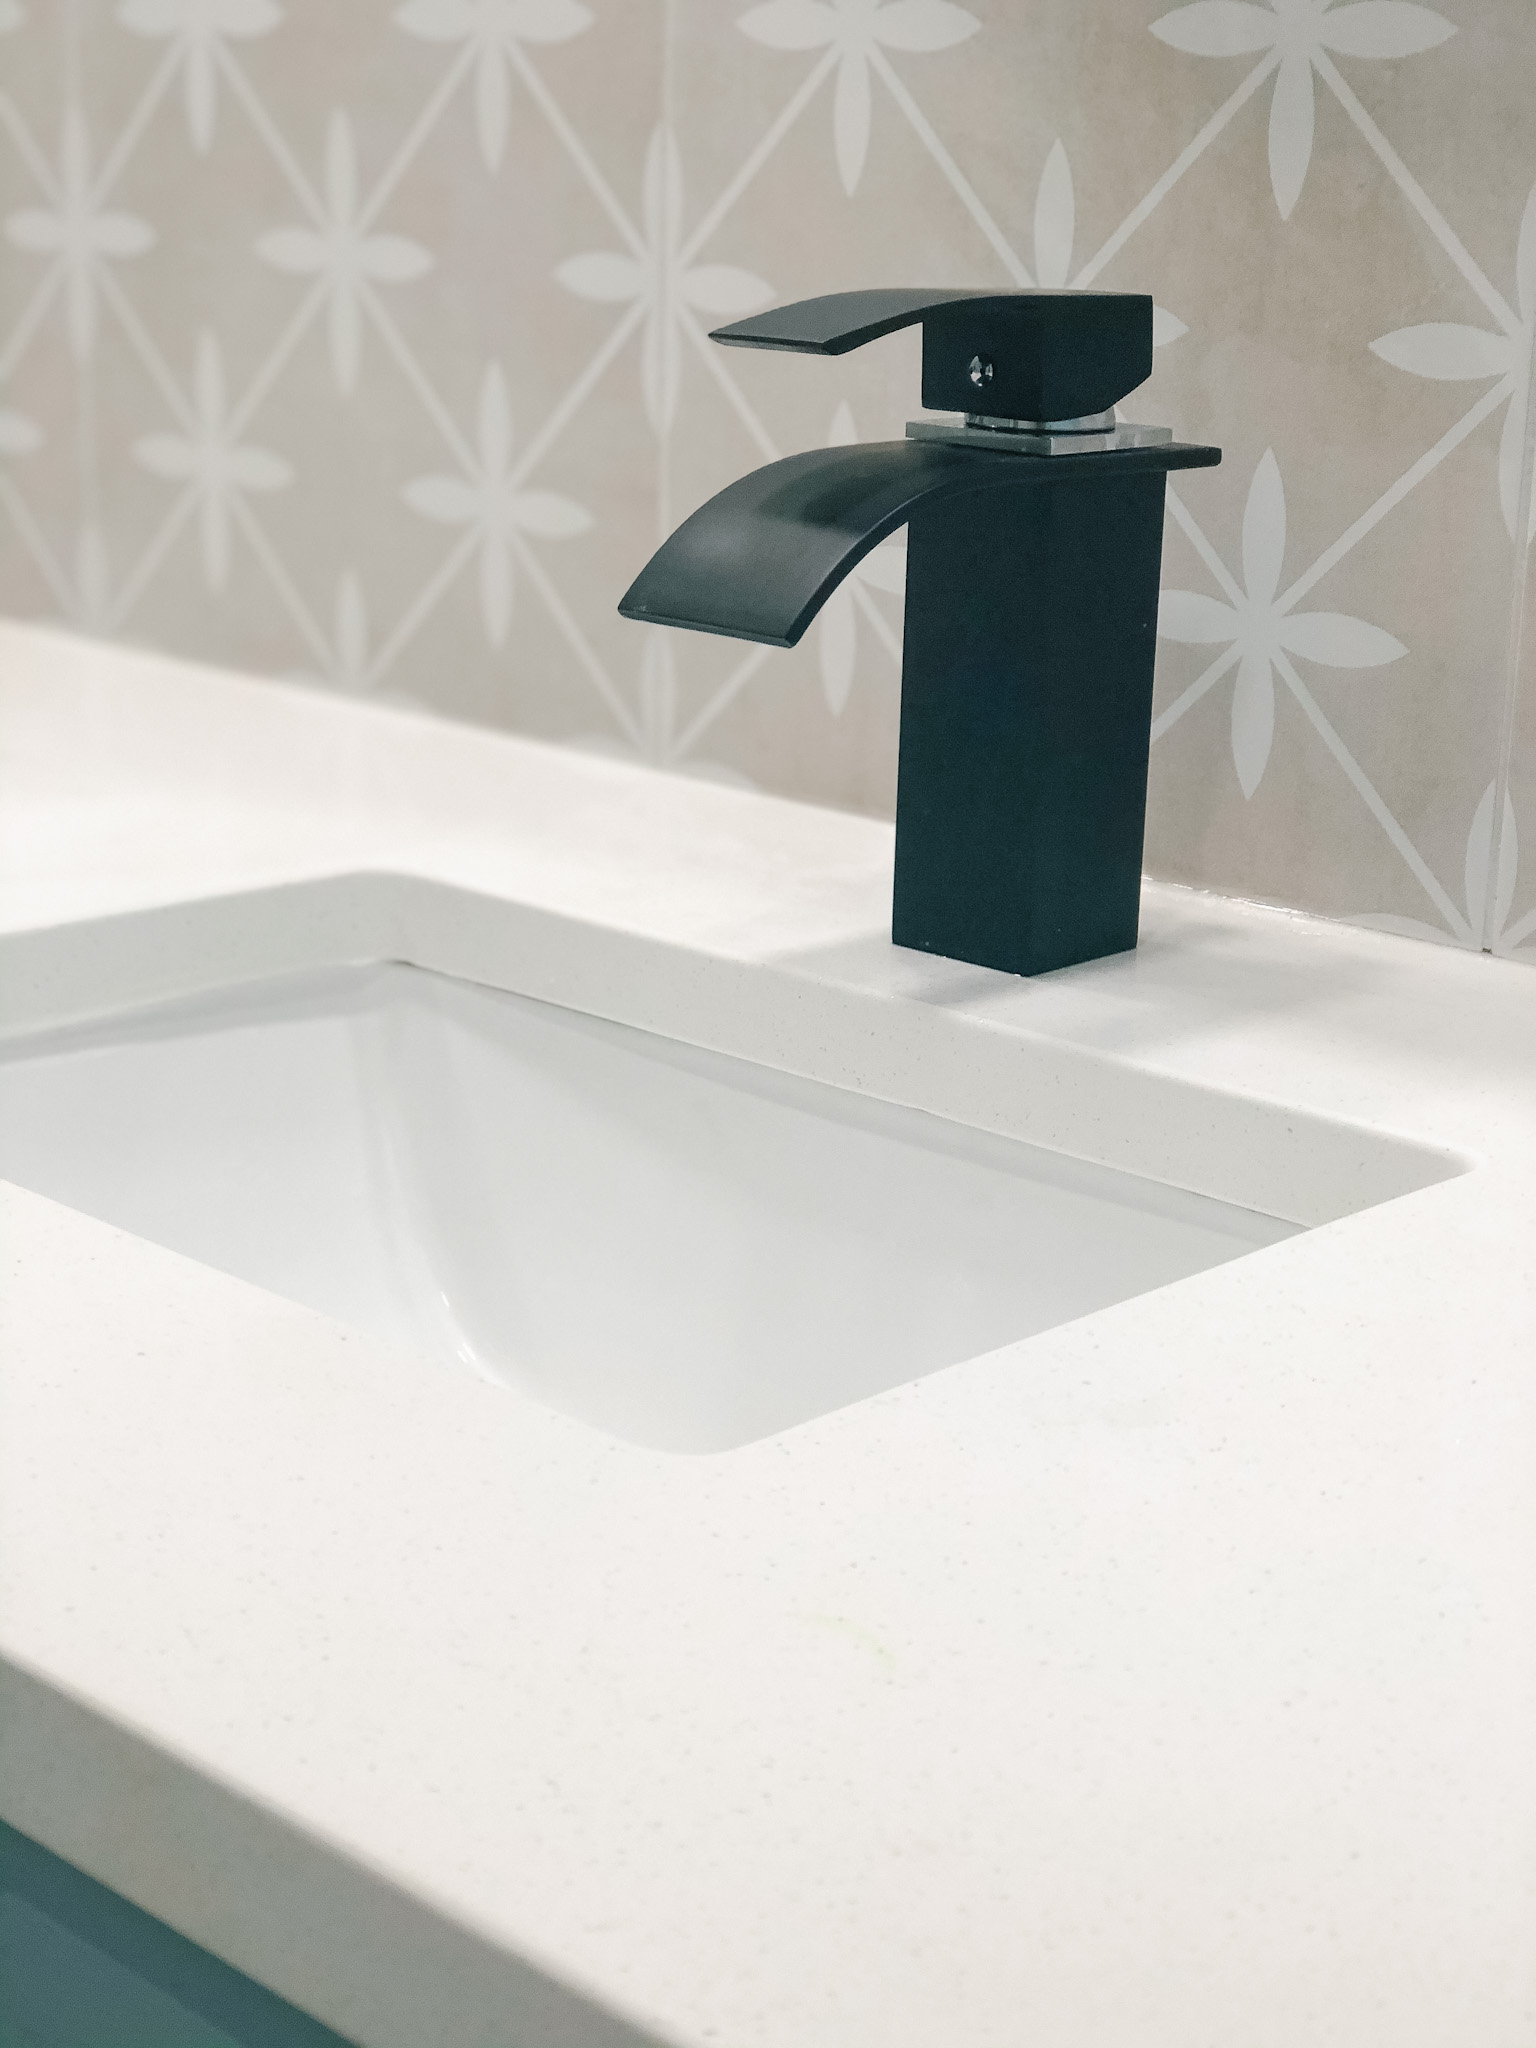 I just love this faucet.  It has a chalky feel and the water comes out in a flat waterfall.